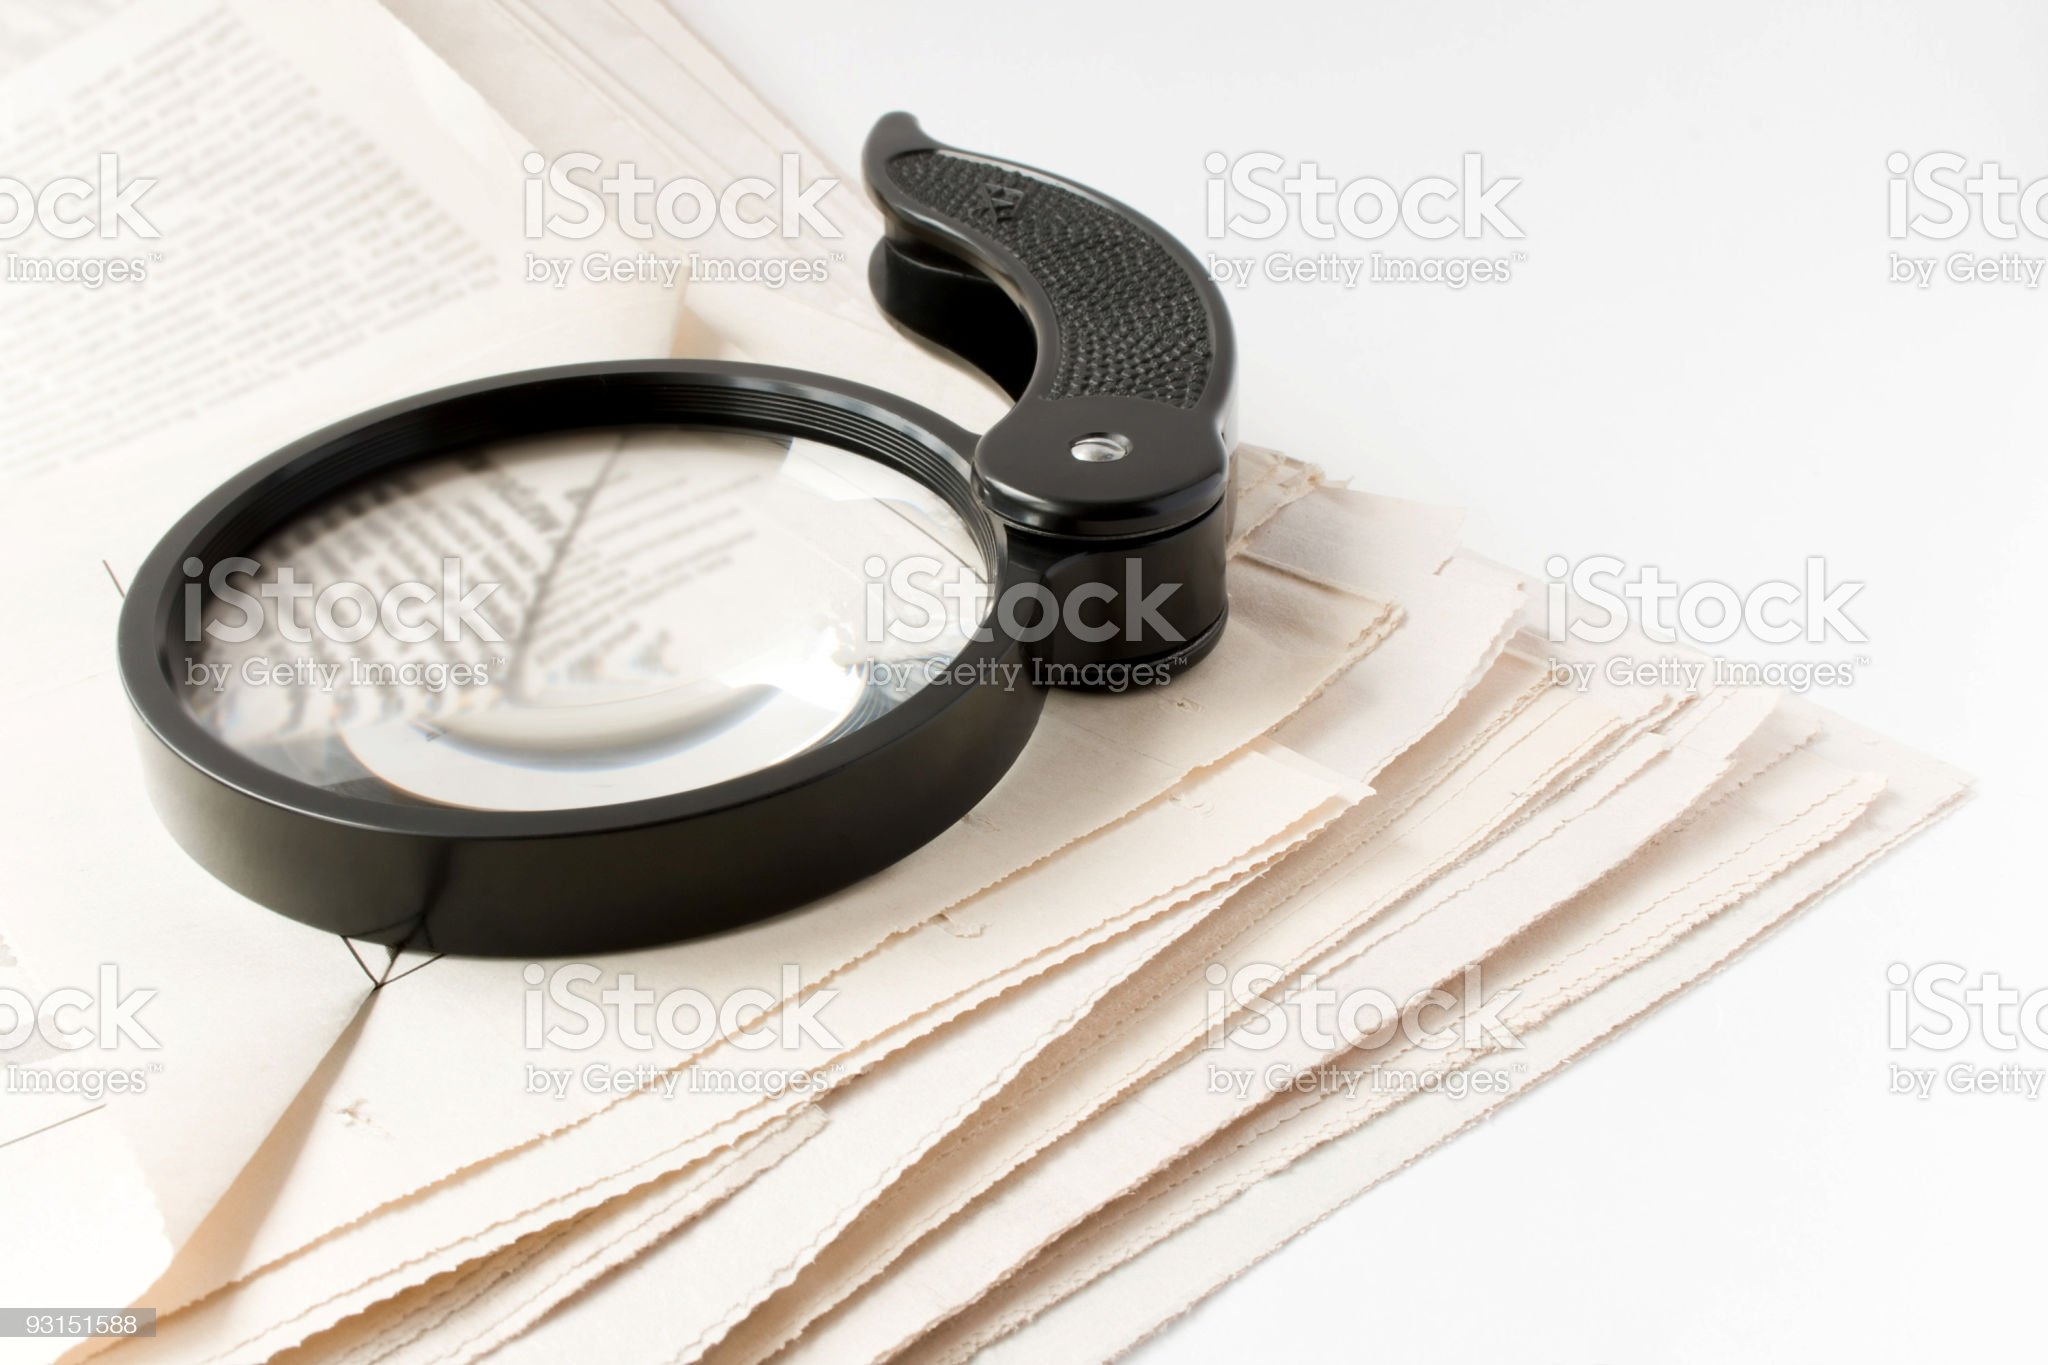 Magnifier and newspaper royalty-free stock photo